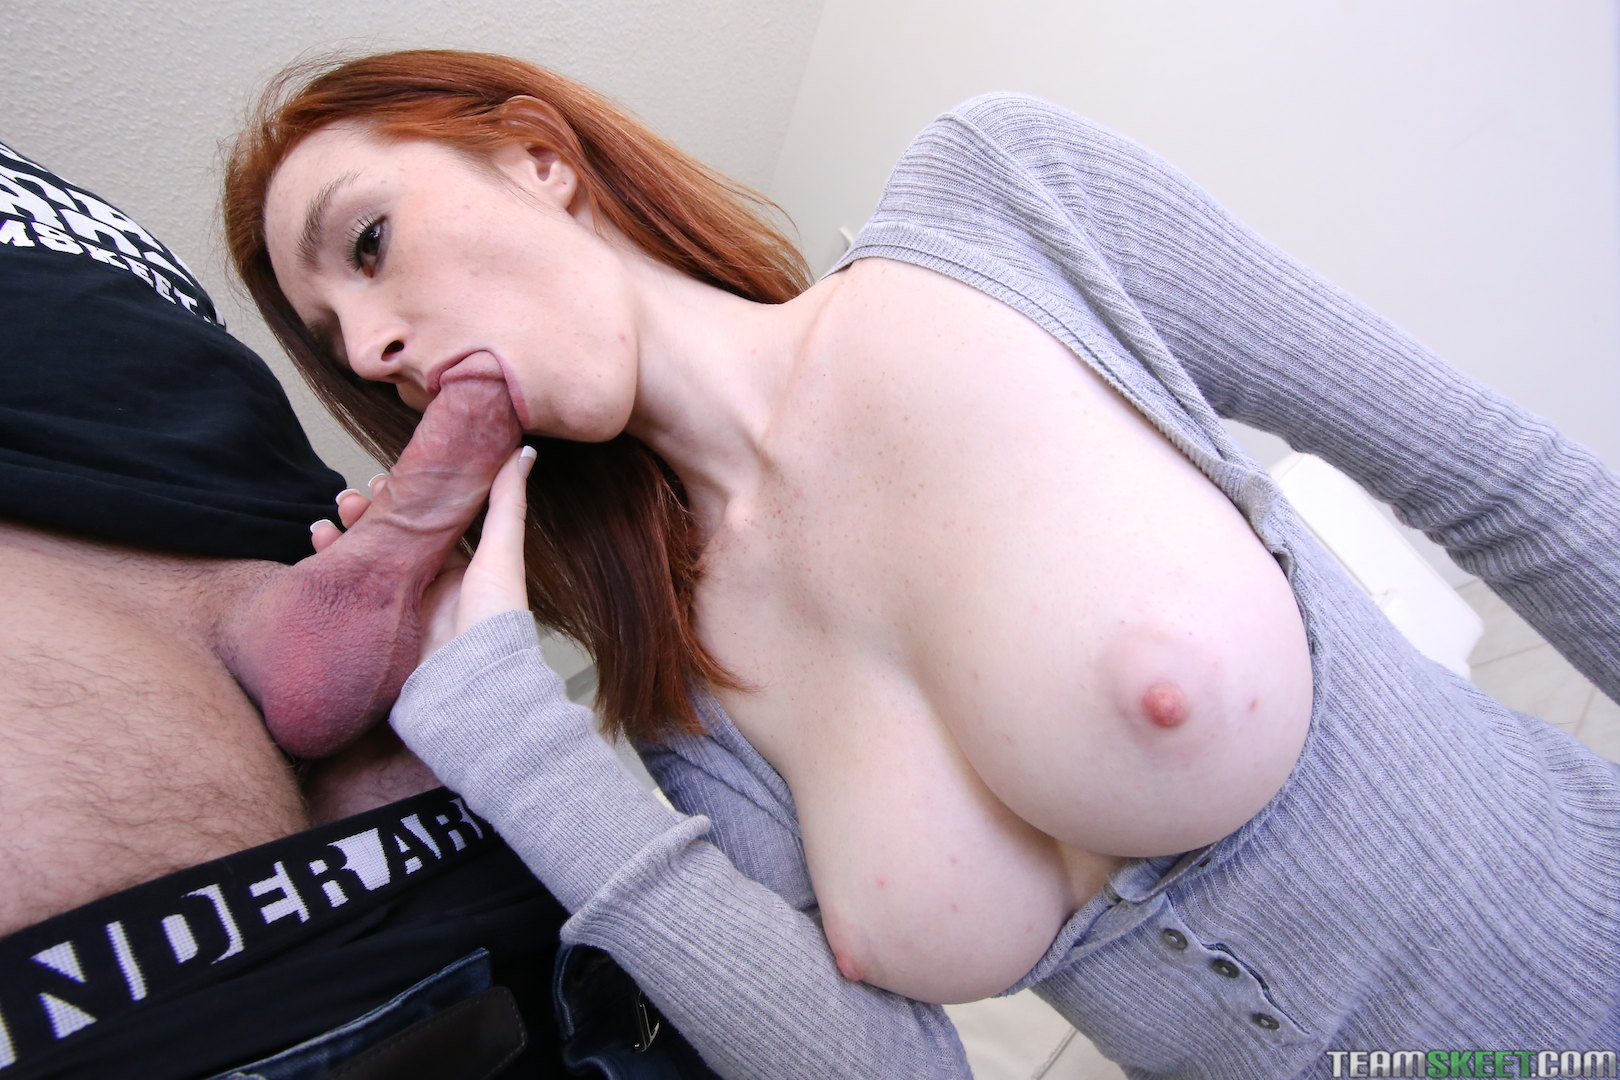 Marvellous female with mellow feets takes a cocky throat job